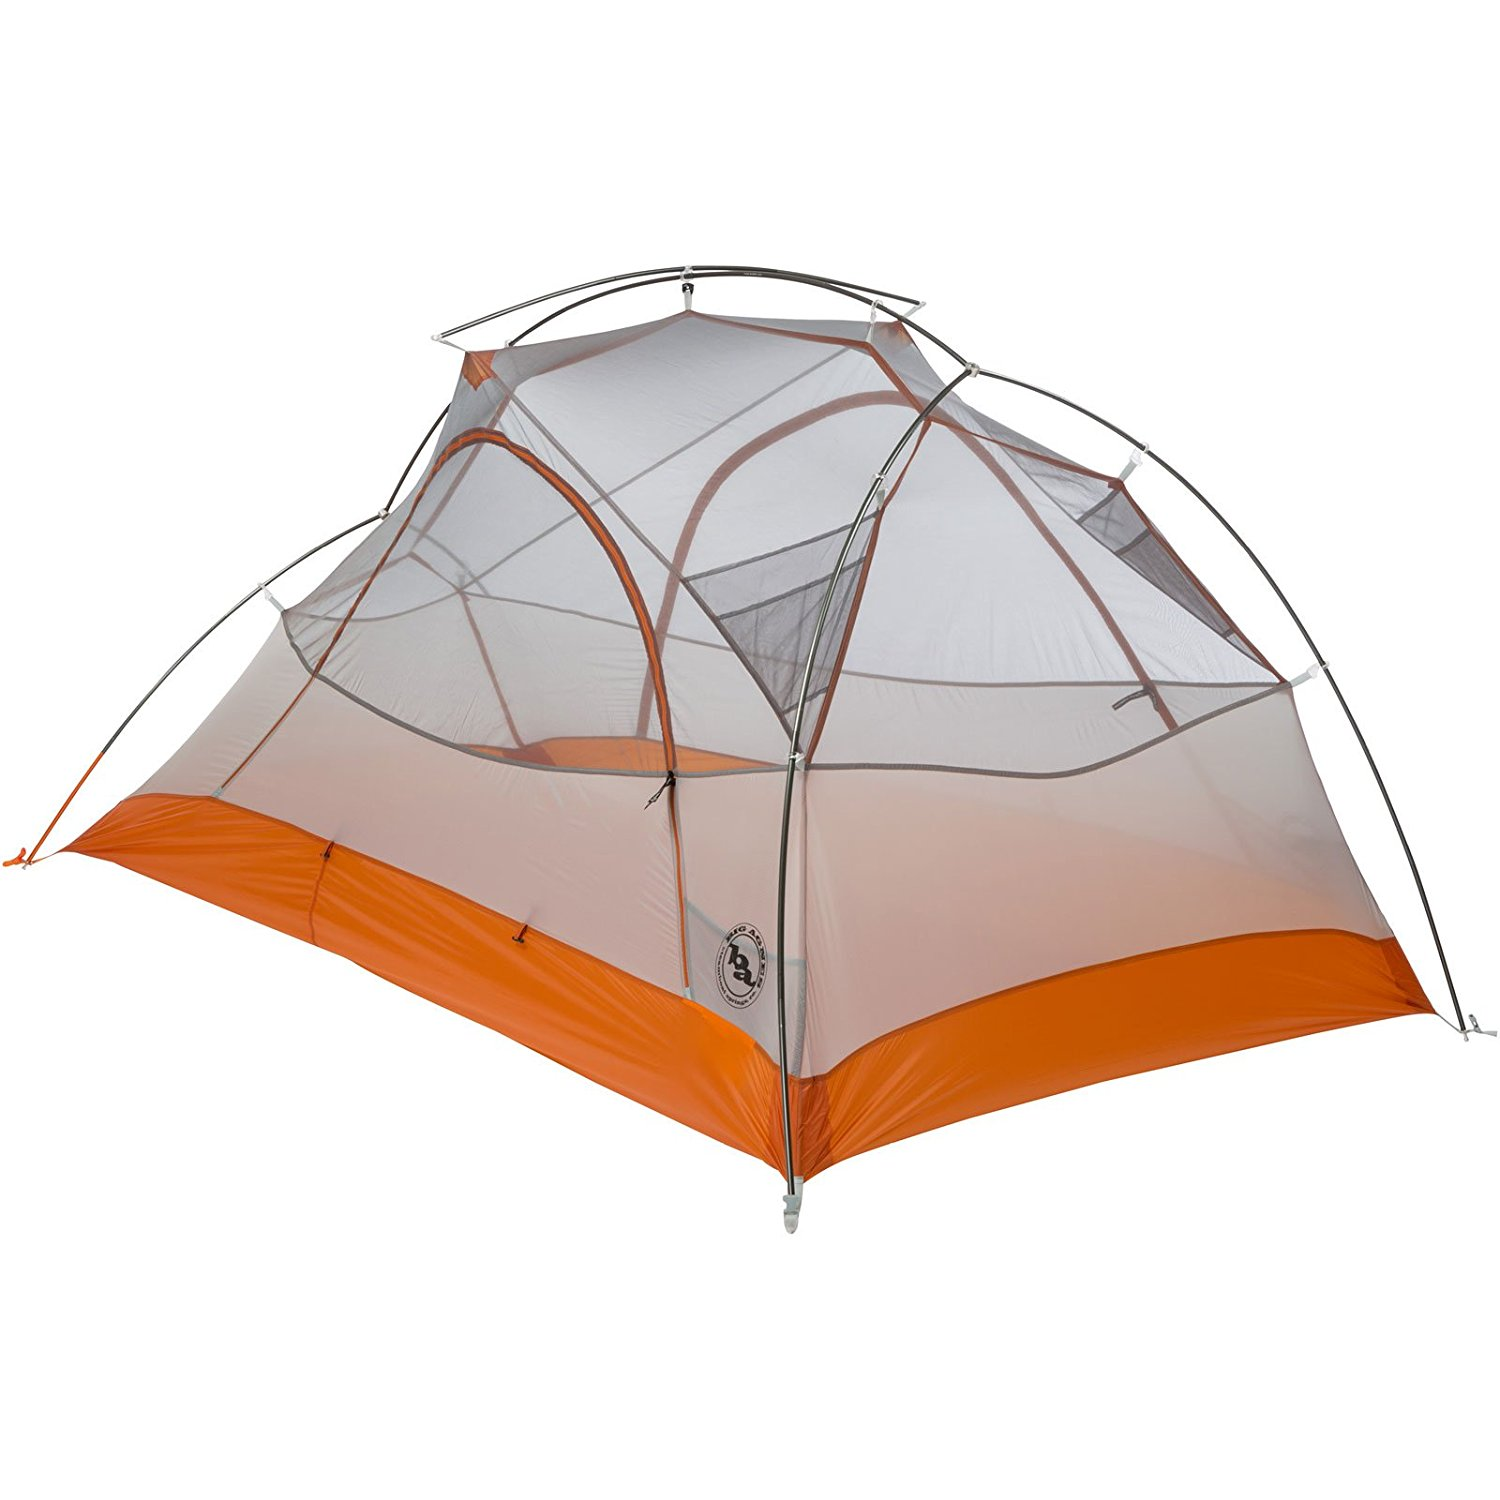 Big Agnes – Copper Spur Backpacking Tent